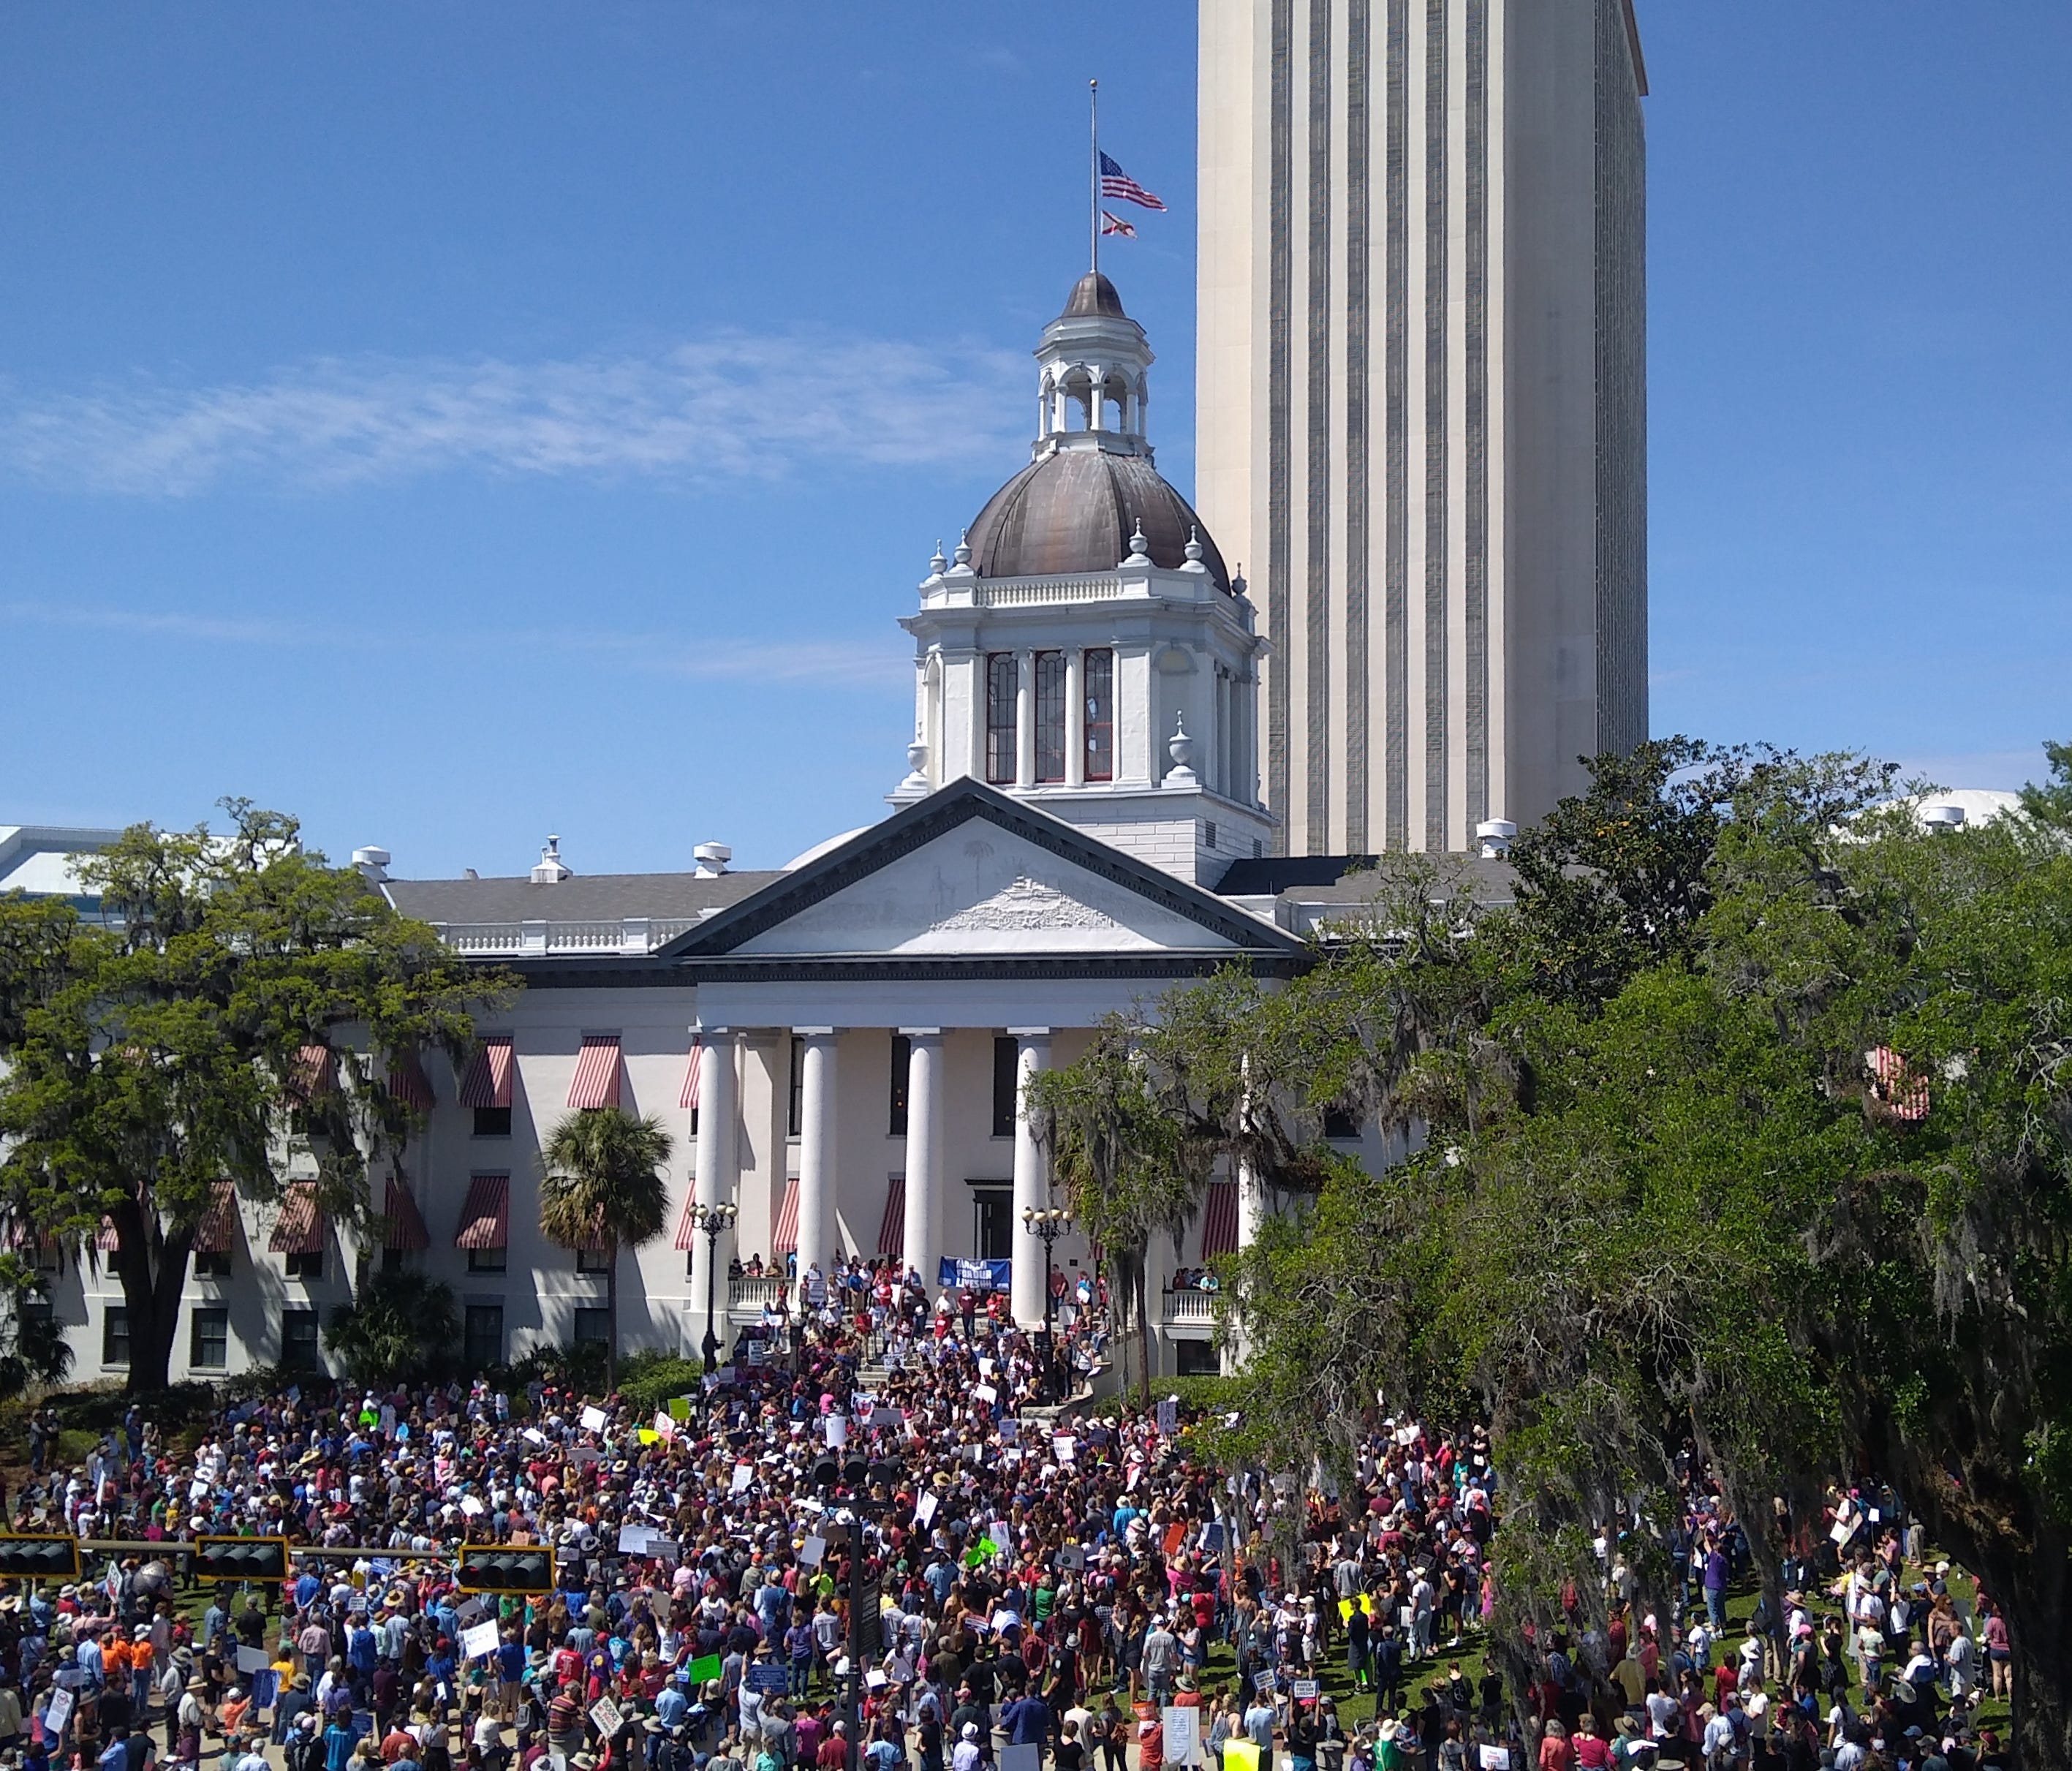 An aerial view of the Florida Capitol during the March for Our Lives rally on Saturday, March 24, where thousands of people showed up to protest stricter gun control laws.